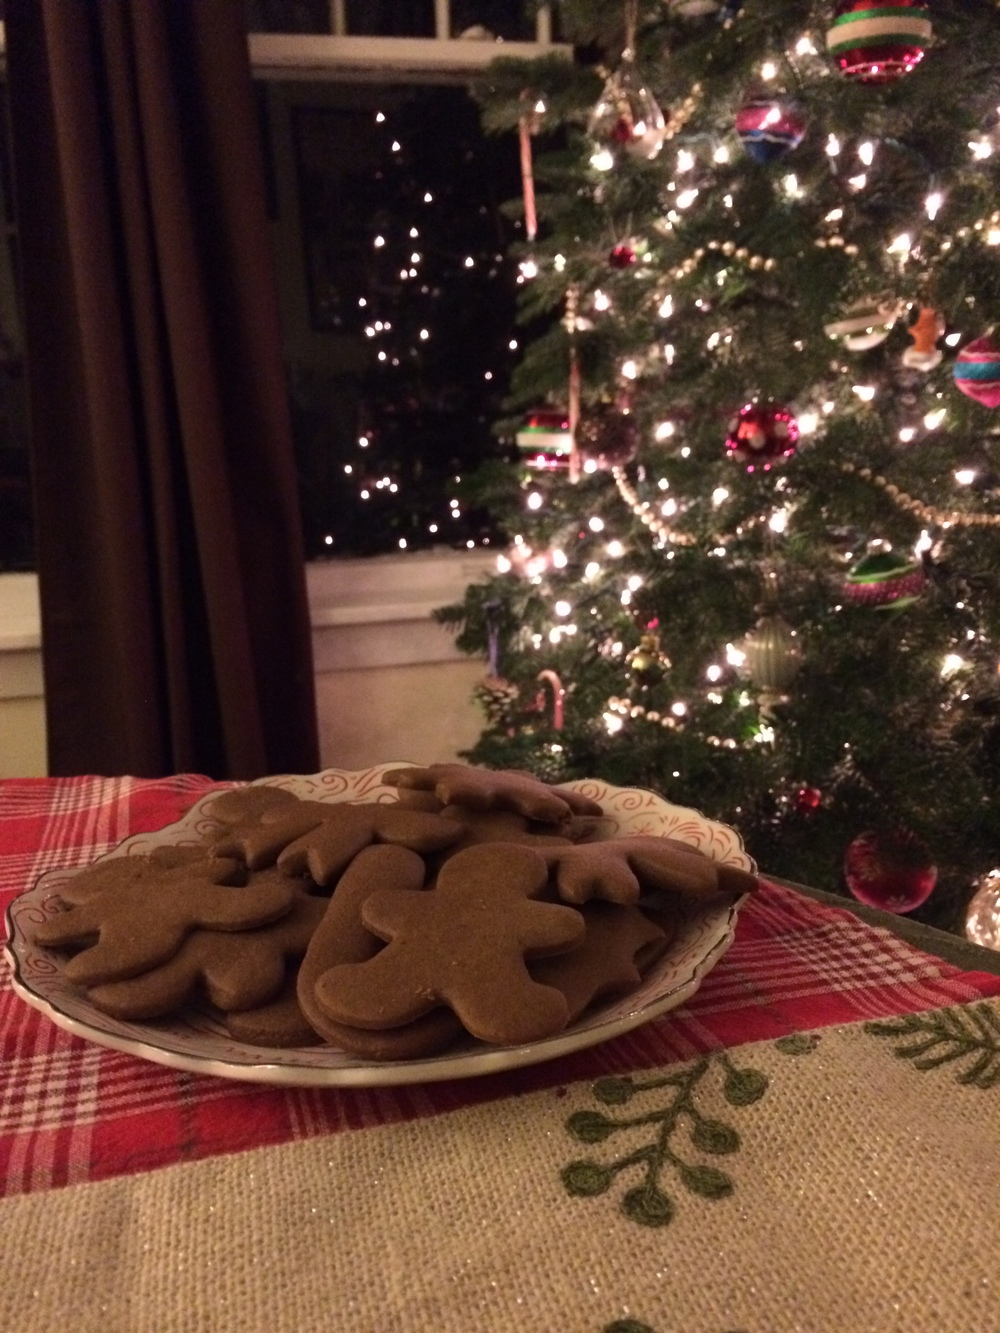 Come on in! Have a cookie!